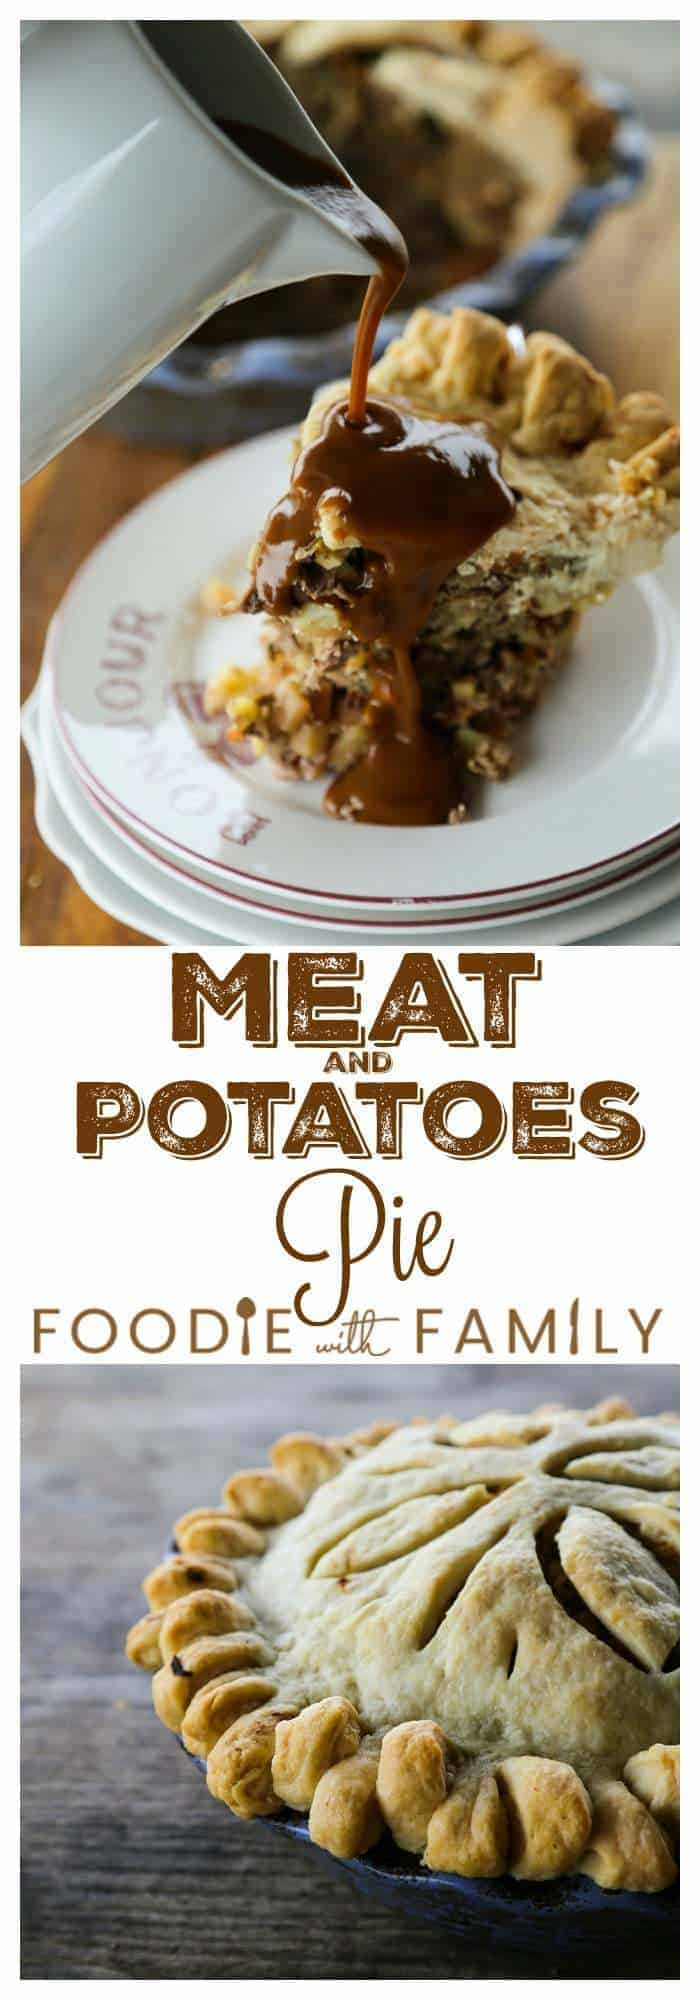 Meat and Potatoes Pie: flaky butter crust filled to bursting with lean beef or venison, potatoes, onions, carrots, rutabaga, and baked to perfection before being topped with luscious brown gravy!